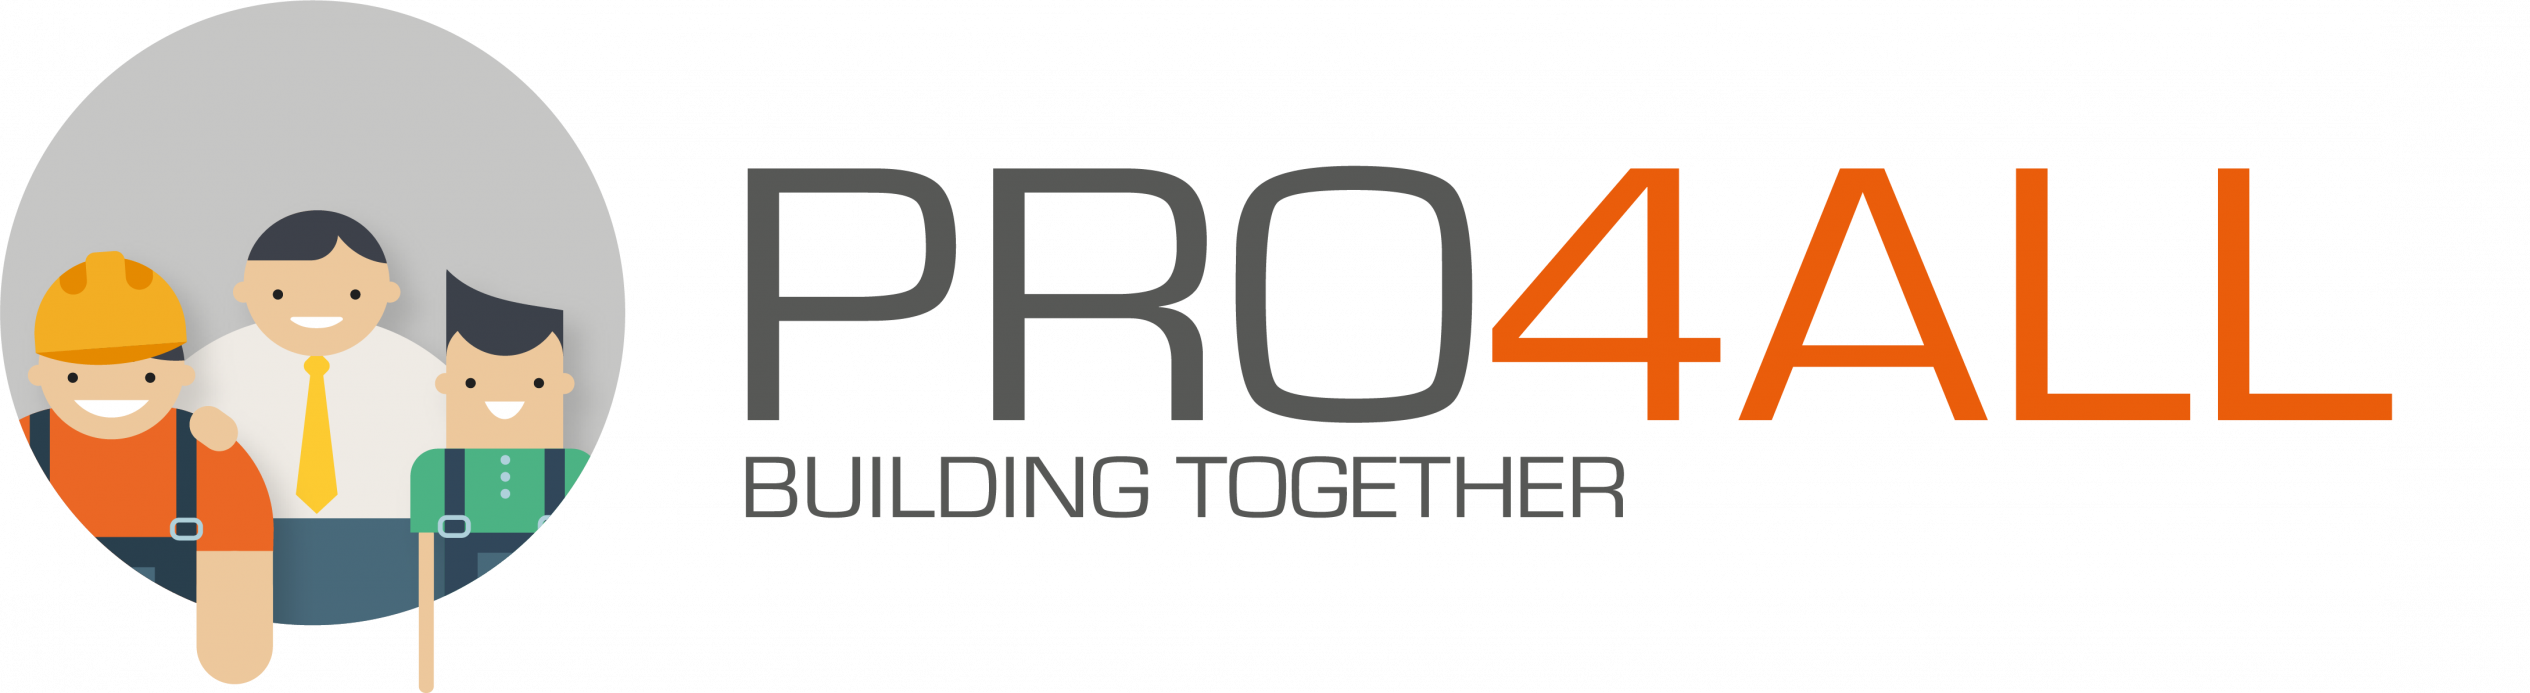 Pro4all Logo.png